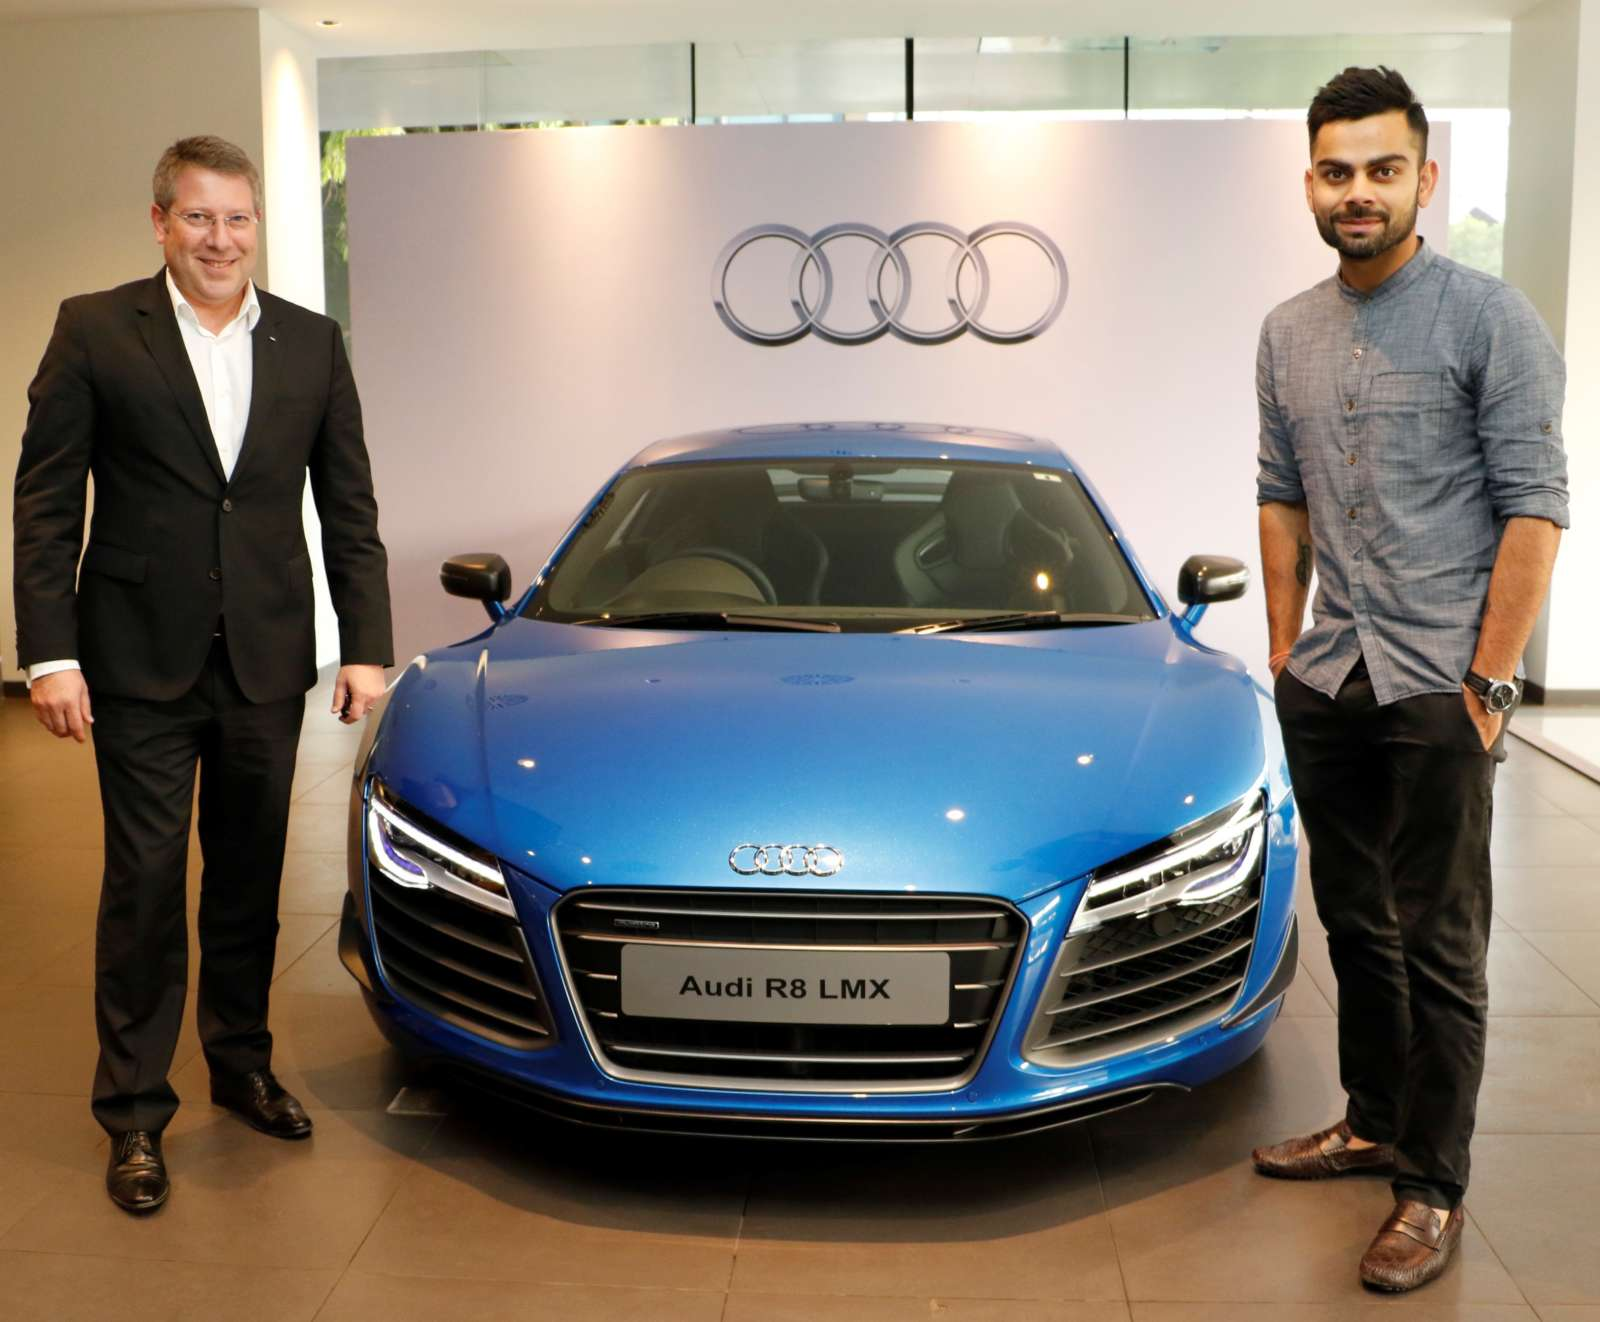 Virat Kohli Gets Himself An Audi R8 Lmx 1 Of 99 Ever Made Motoroids